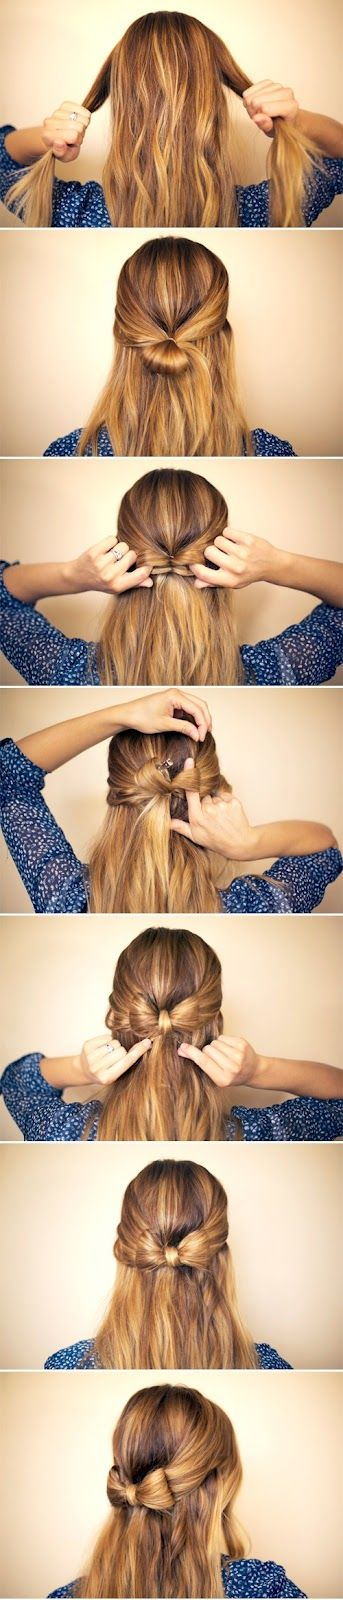 bow-tie hair tutorial